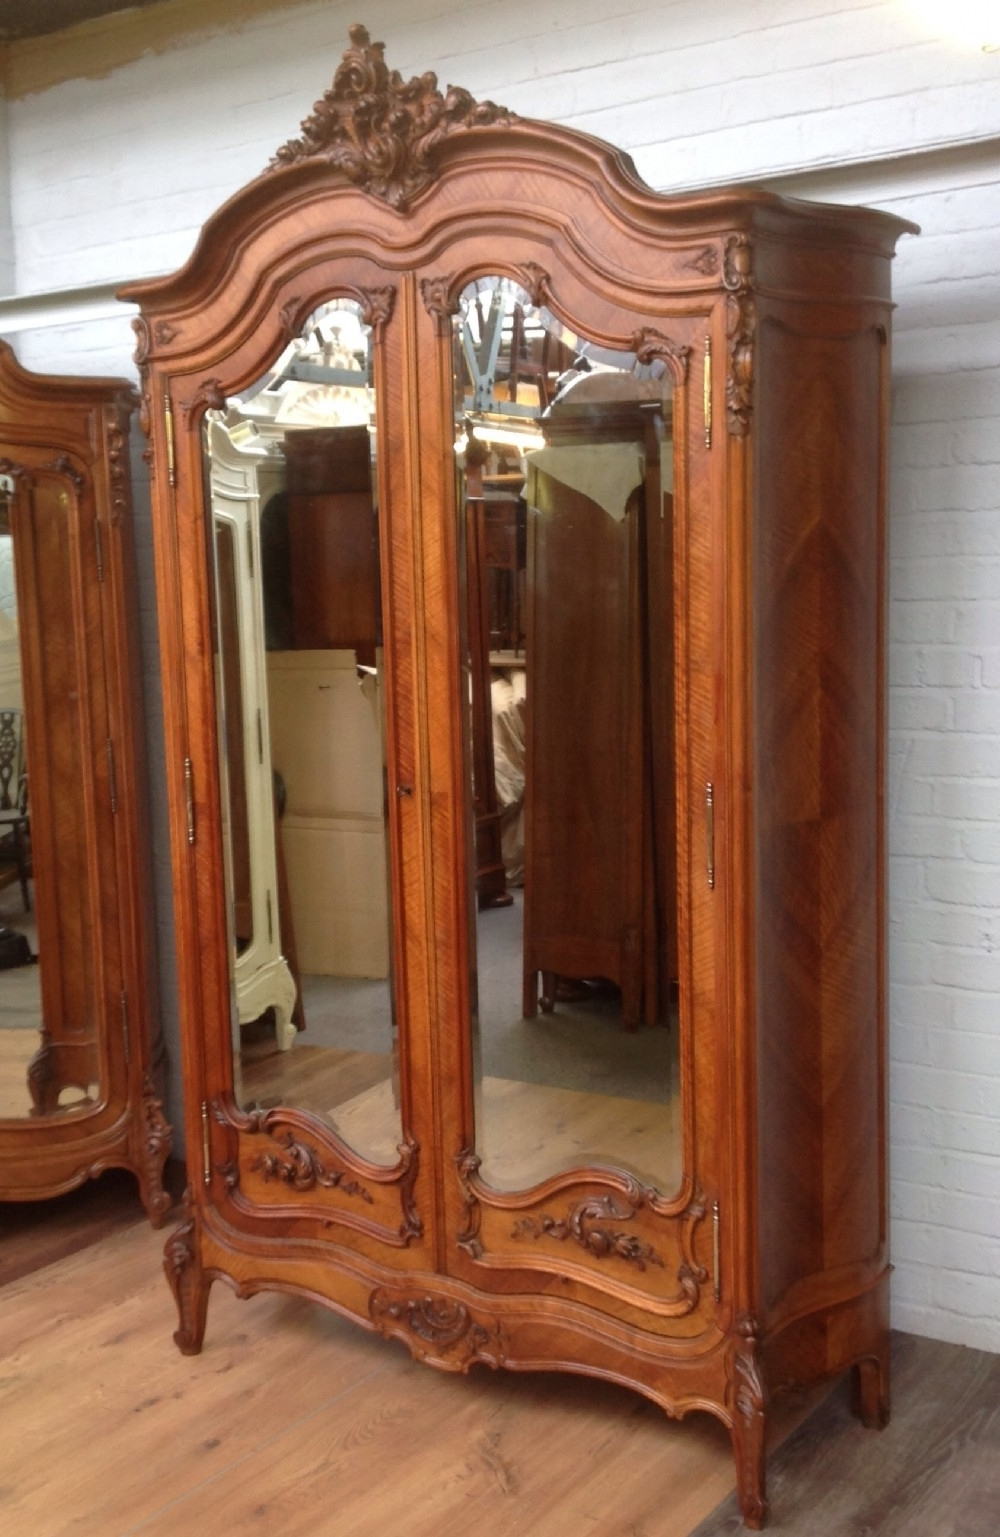 Antique French Walnut Armoire With Carved Doors (View 5 of 15)